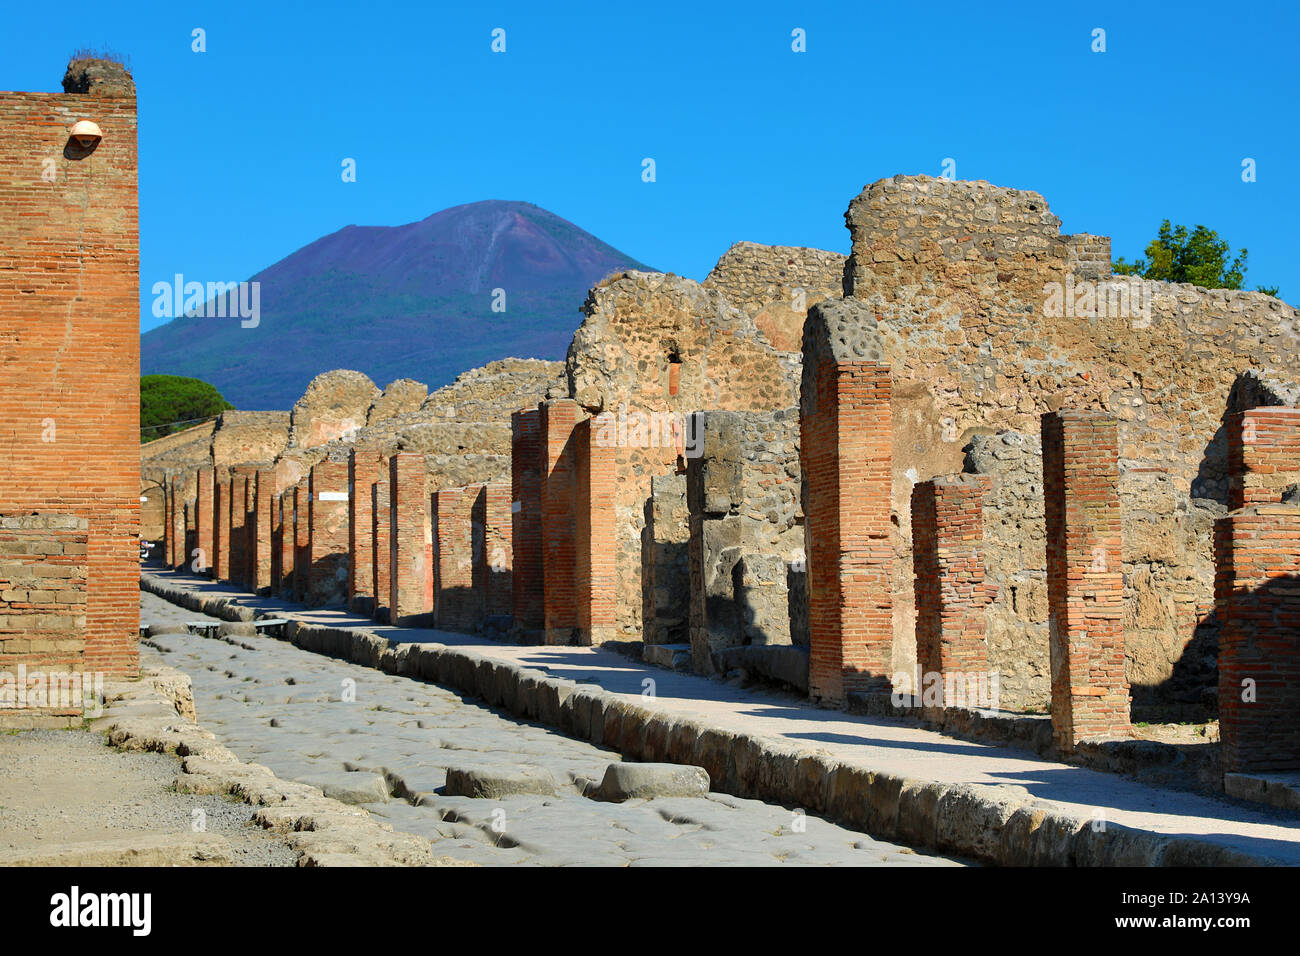 Street and ruins of houses in the ancient Roman city of Pompeii, Italy Stock Photo